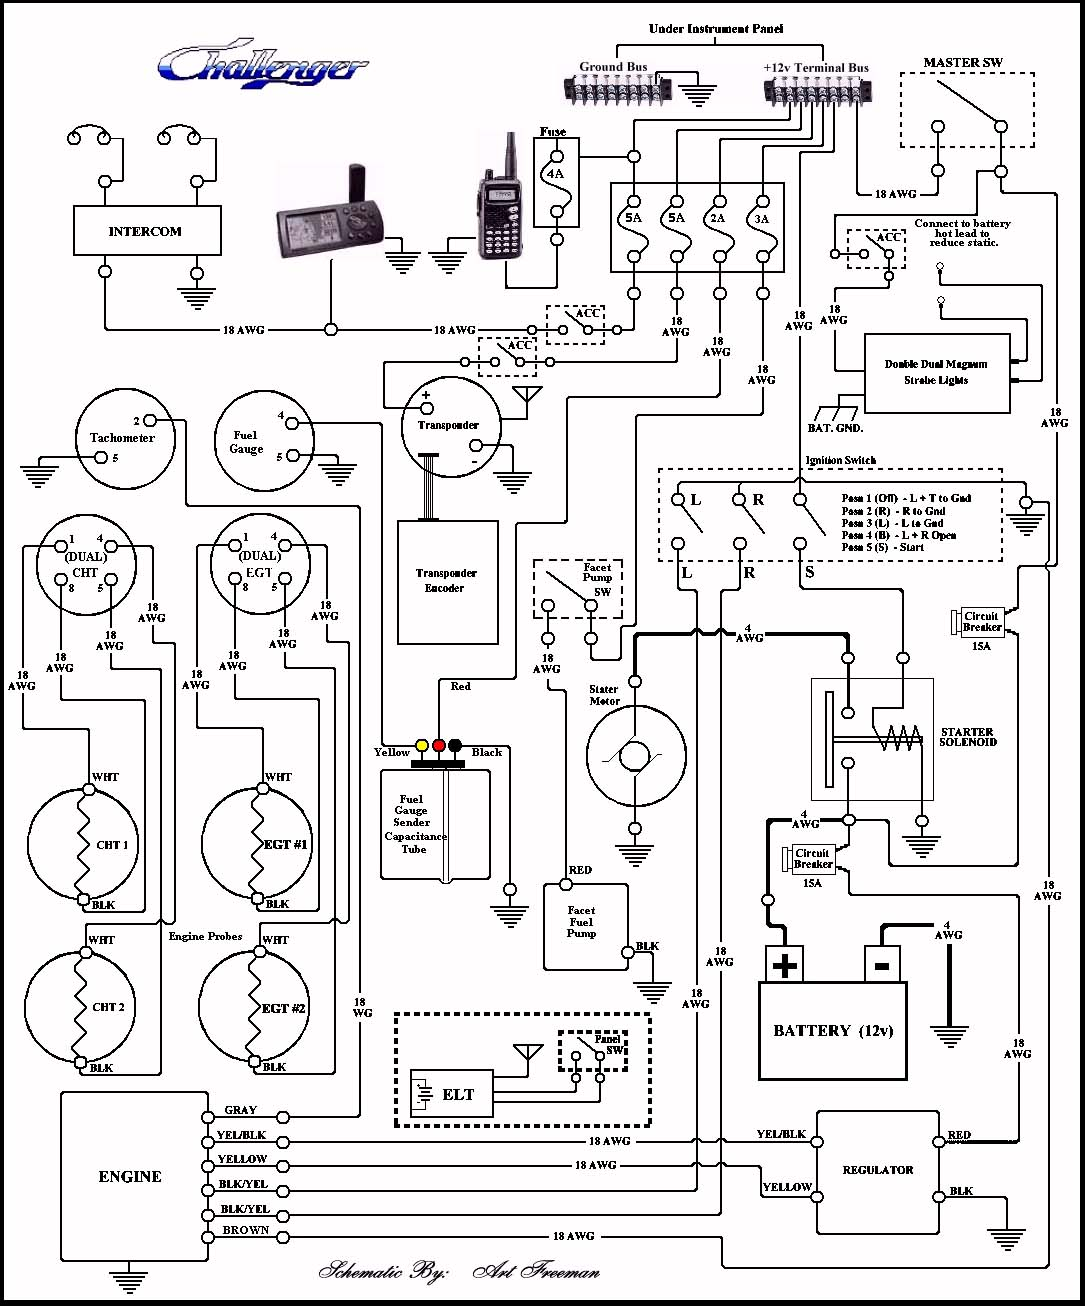 Aircraft wiring diagram rv free download wiring diagrams schematics basic wiring of fuselage instruments and power source for looper wiring diagram rv solar wiring cheapraybanclubmaster